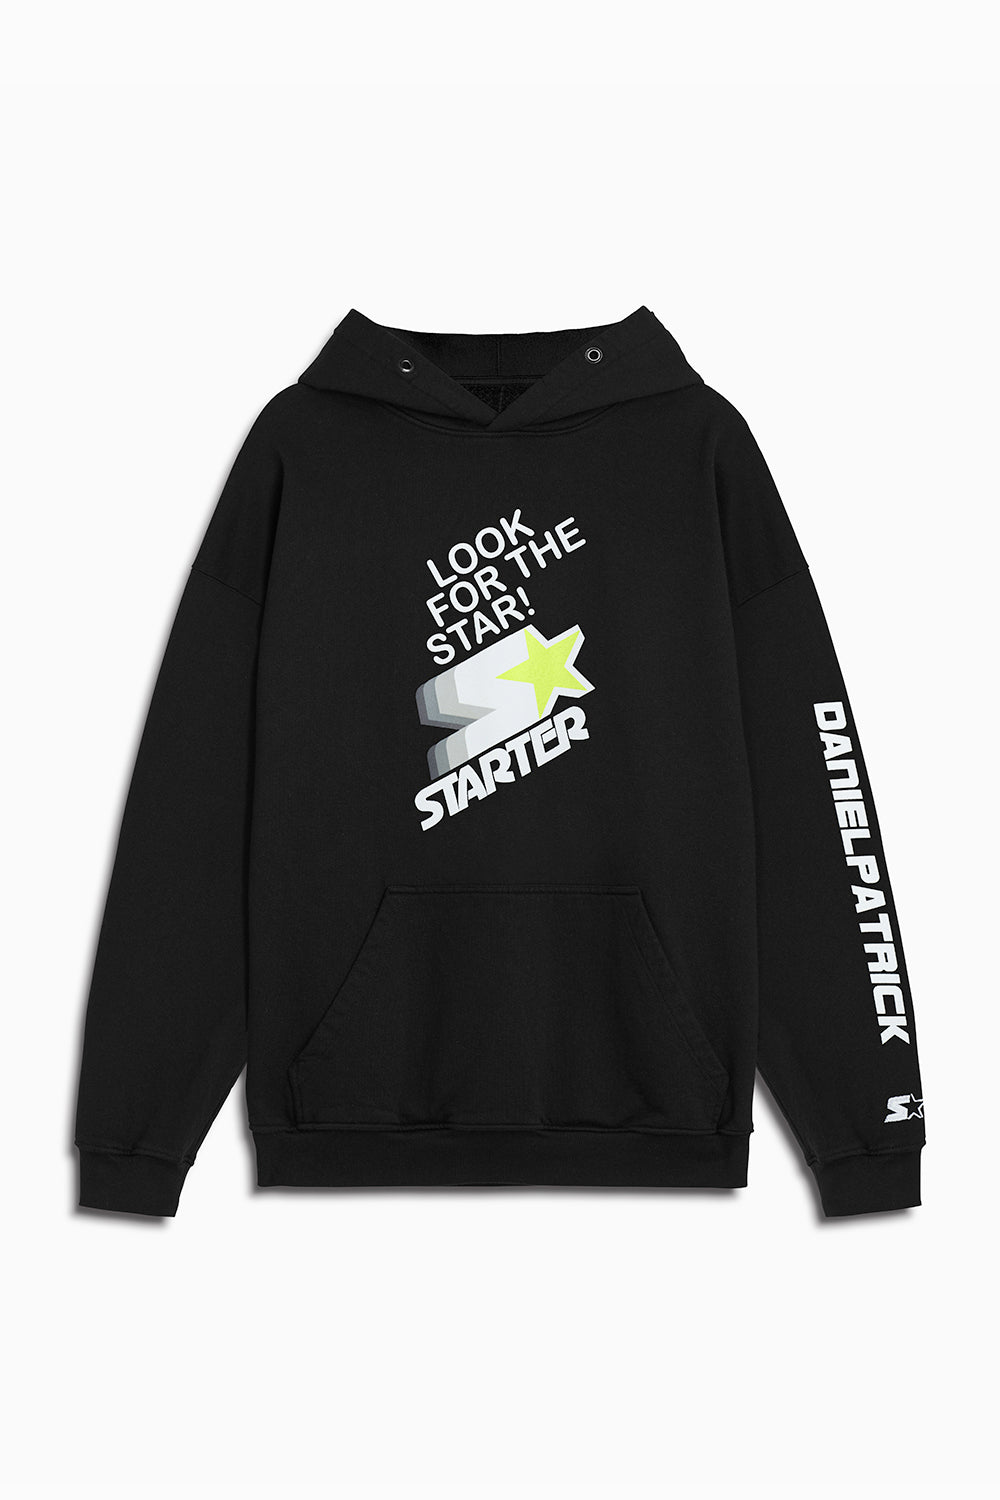 DP look for the star hoodie in black/white/neon by daniel patrick x starter